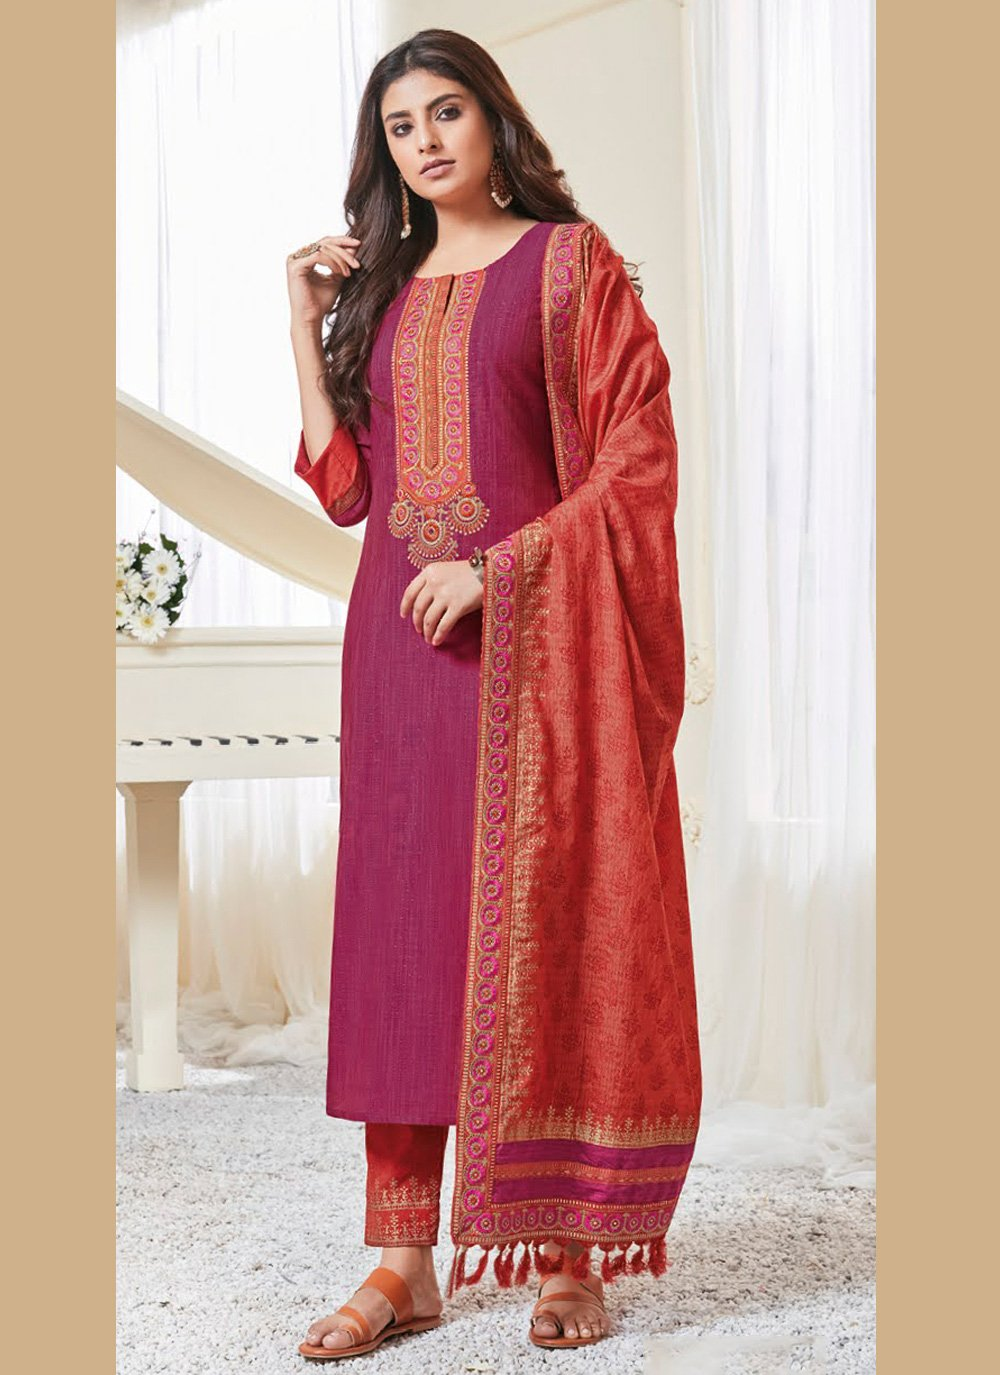 Resham Polly Cotton Pant Style Suit